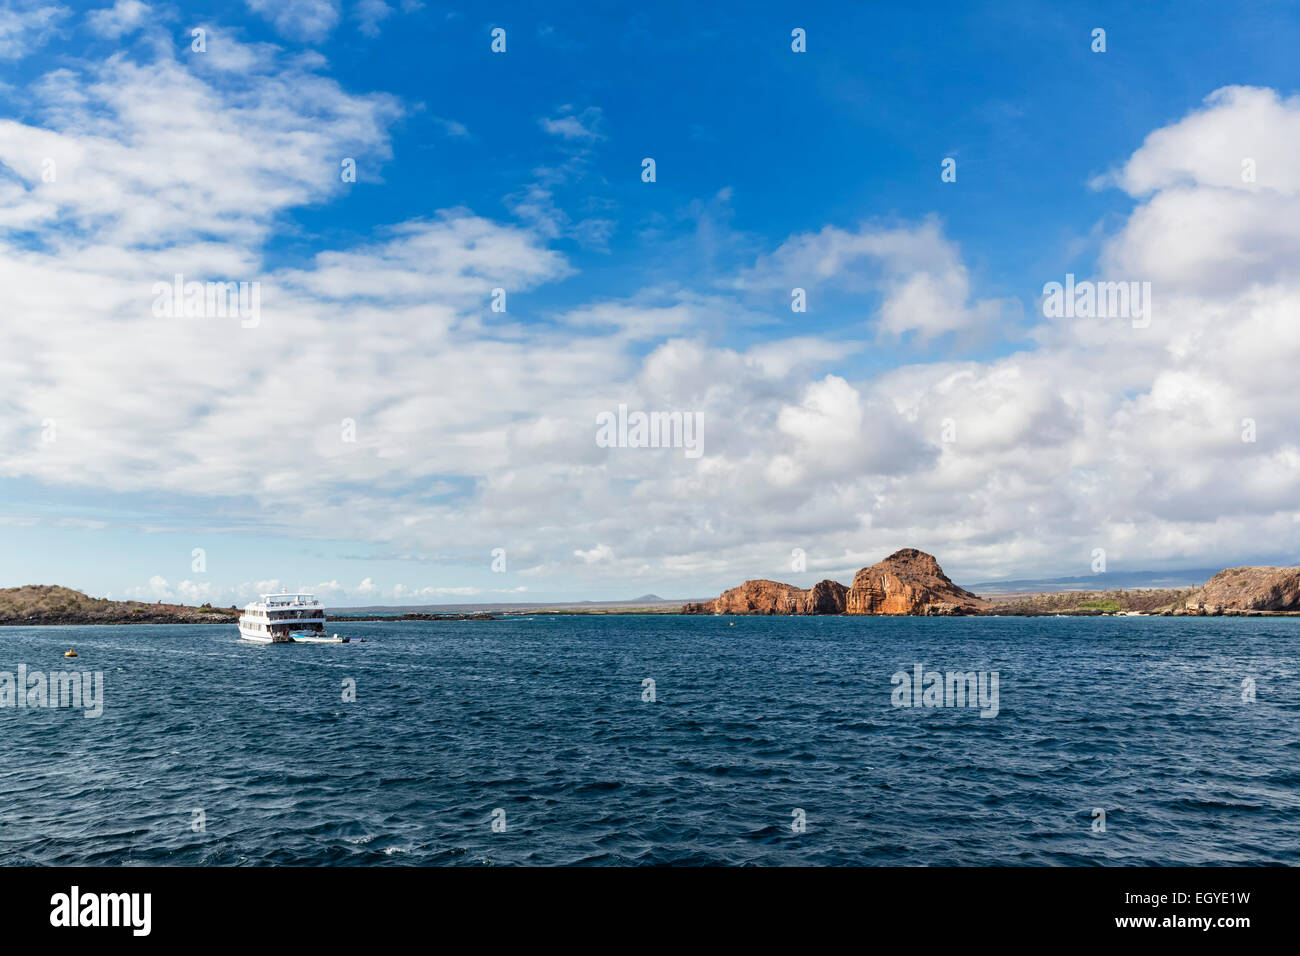 Ecuador, Galapagos Islands, Plaza Sur, cruise liner driving on the Pacific Ocean - Stock Image